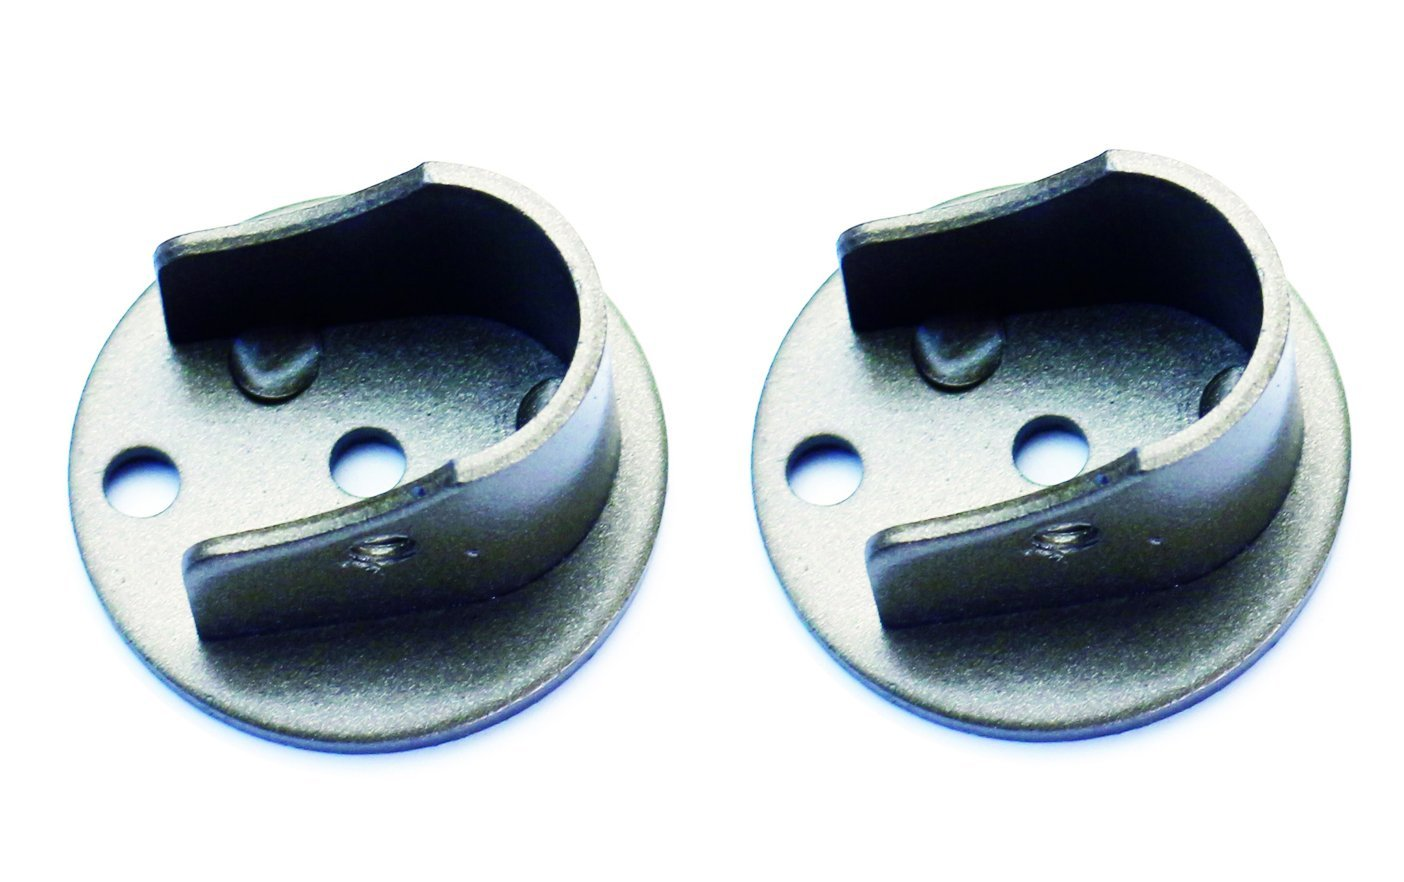 Set of 2 Inside Mount Brackets for 1 1/8-inch to 1 1/4-inch Curtain Rods